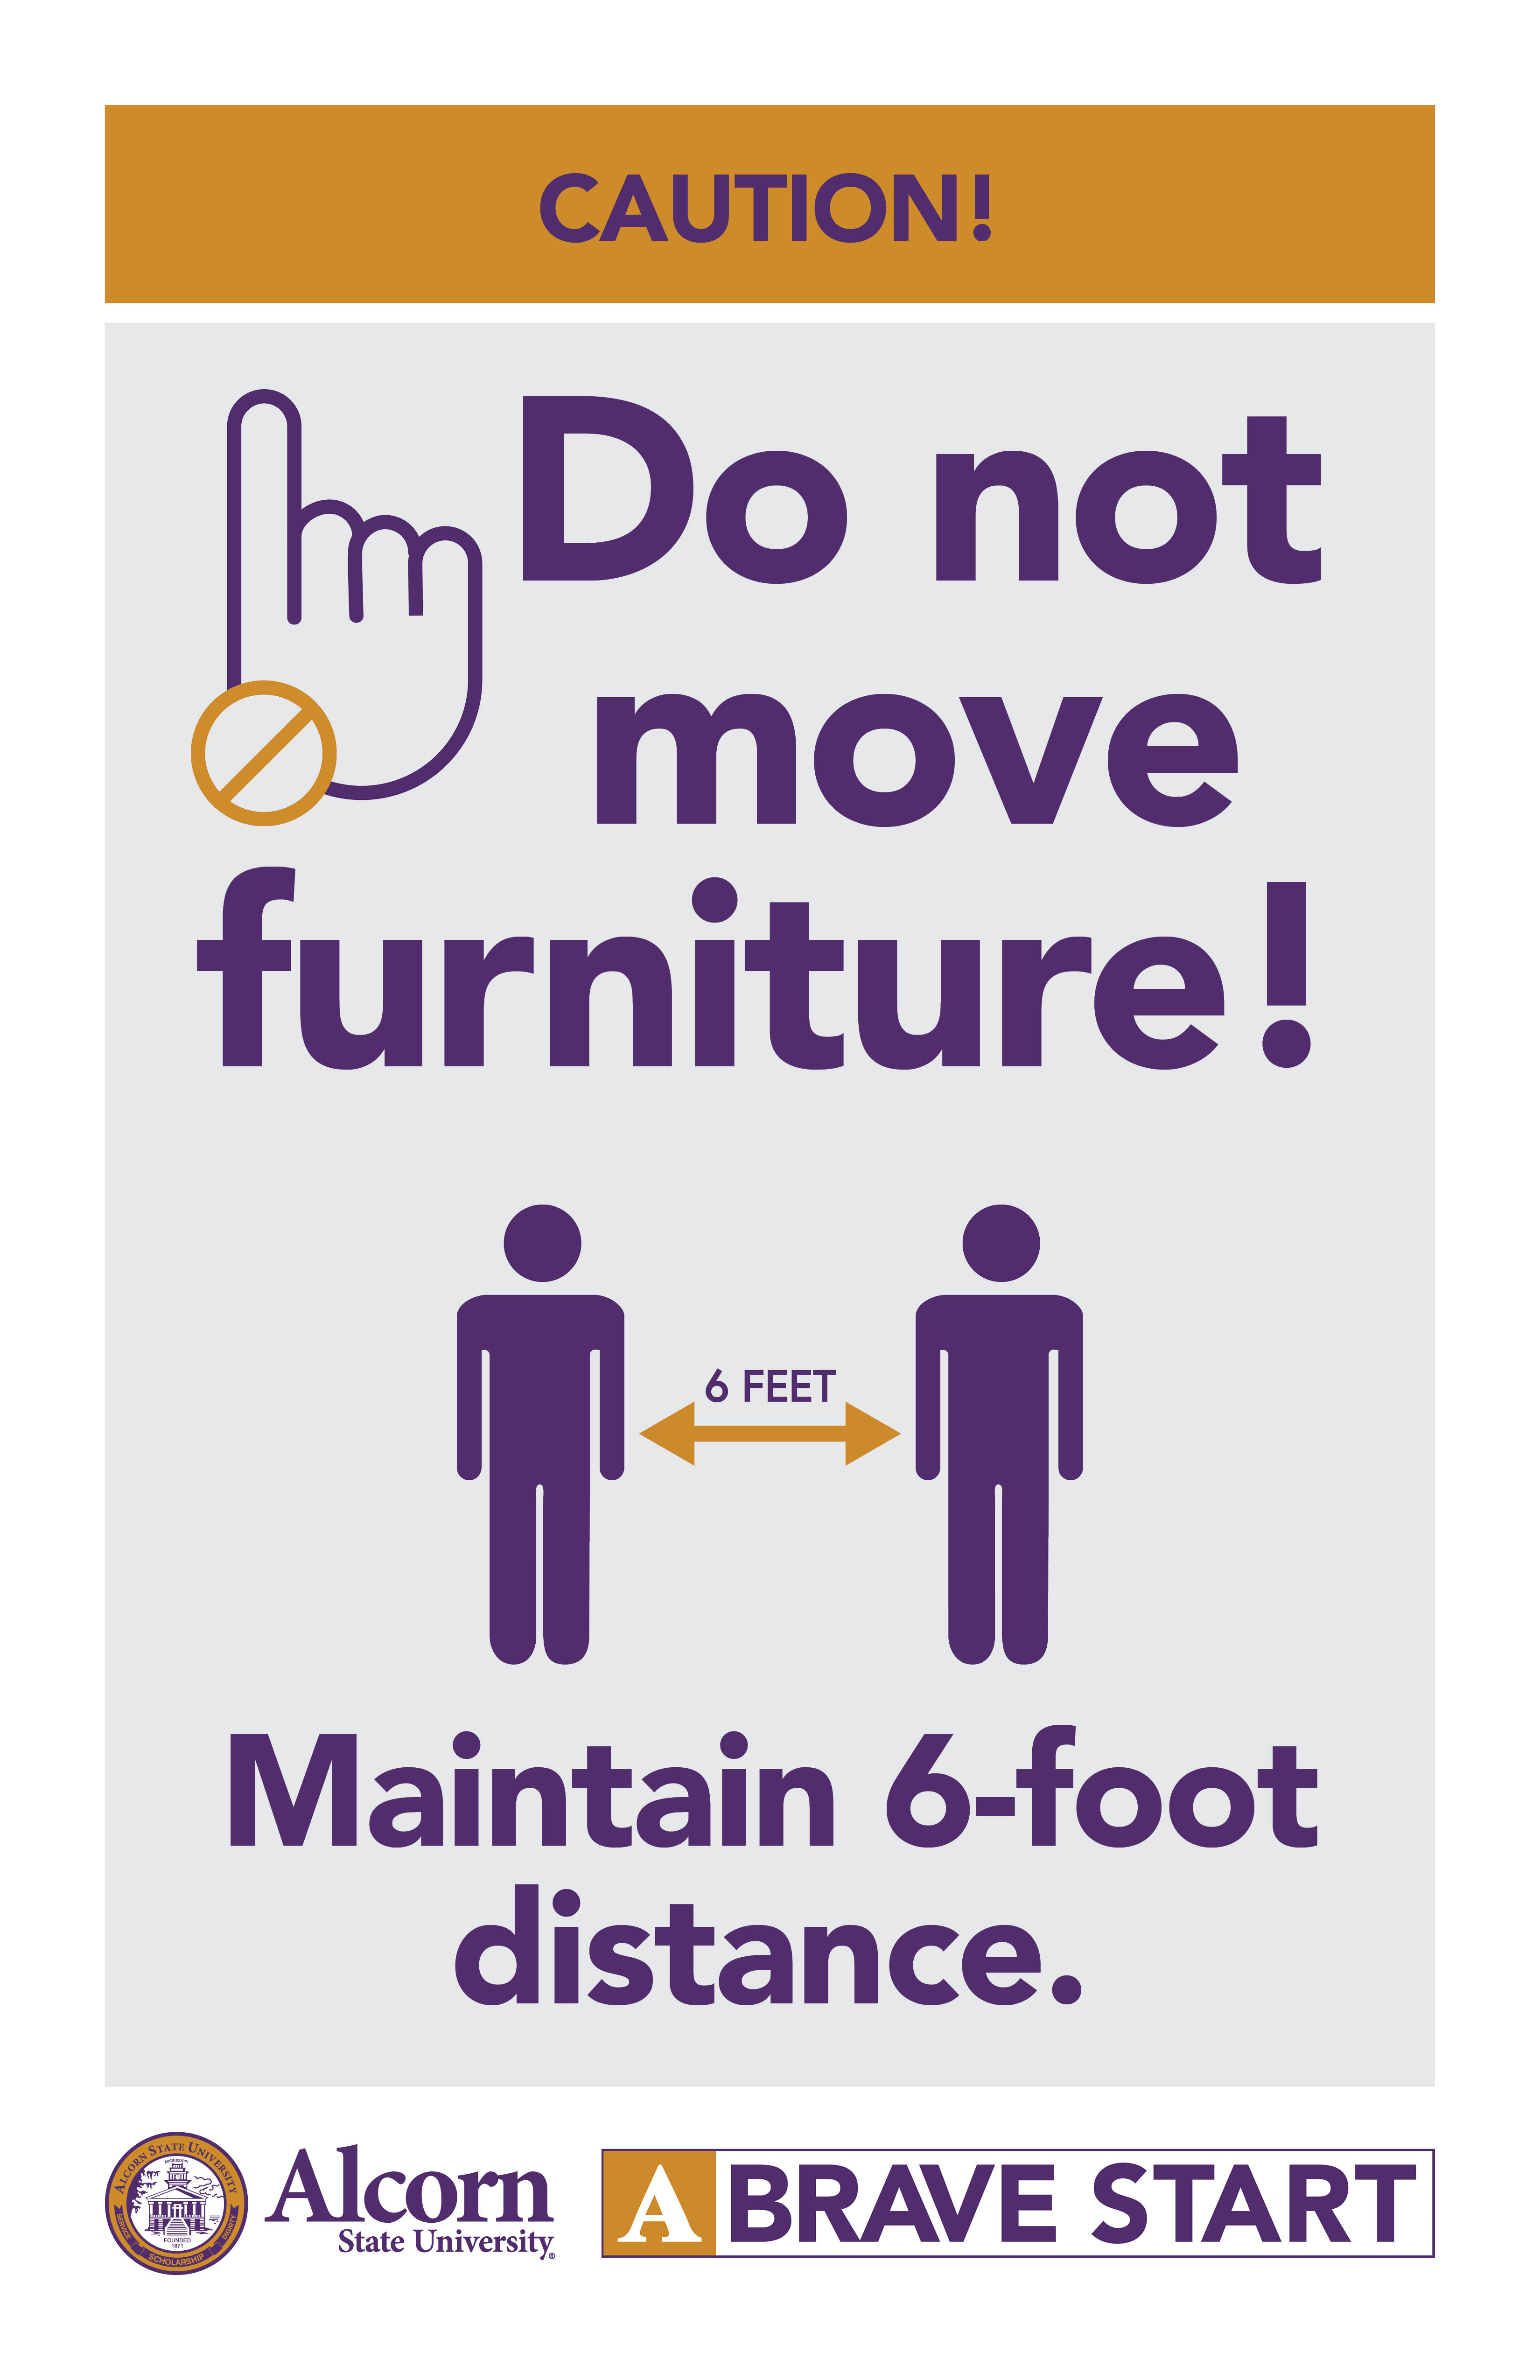 CAUTION! (Picture of a hand with a caution sign) Do not move furniture! (Picture of two people standing six feet apart) Maintain 6-foot distance. (Alcorn logo mark. A Brave Start logo mark.)